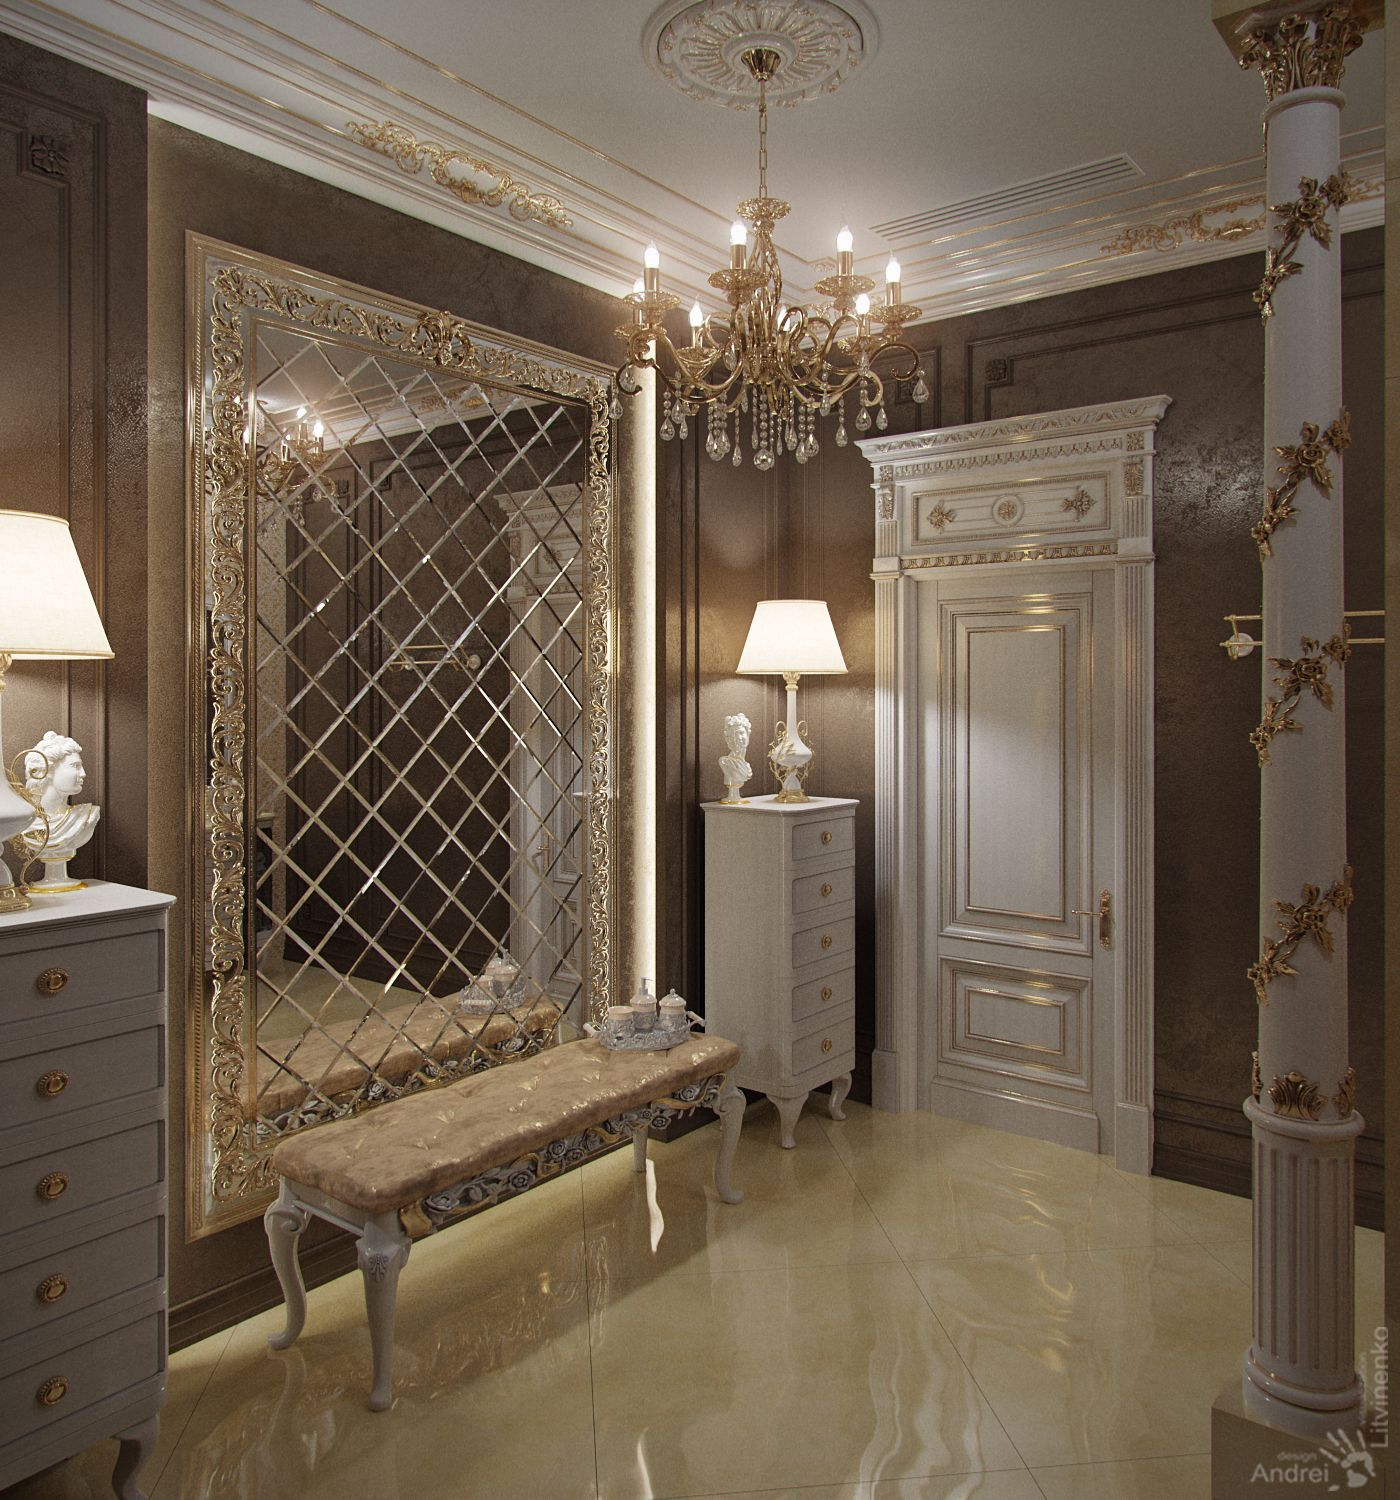 10 Adorable Round Wall Mirror Chandeliers Ideas Home Interior Design Mirror Design Wall Luxury House